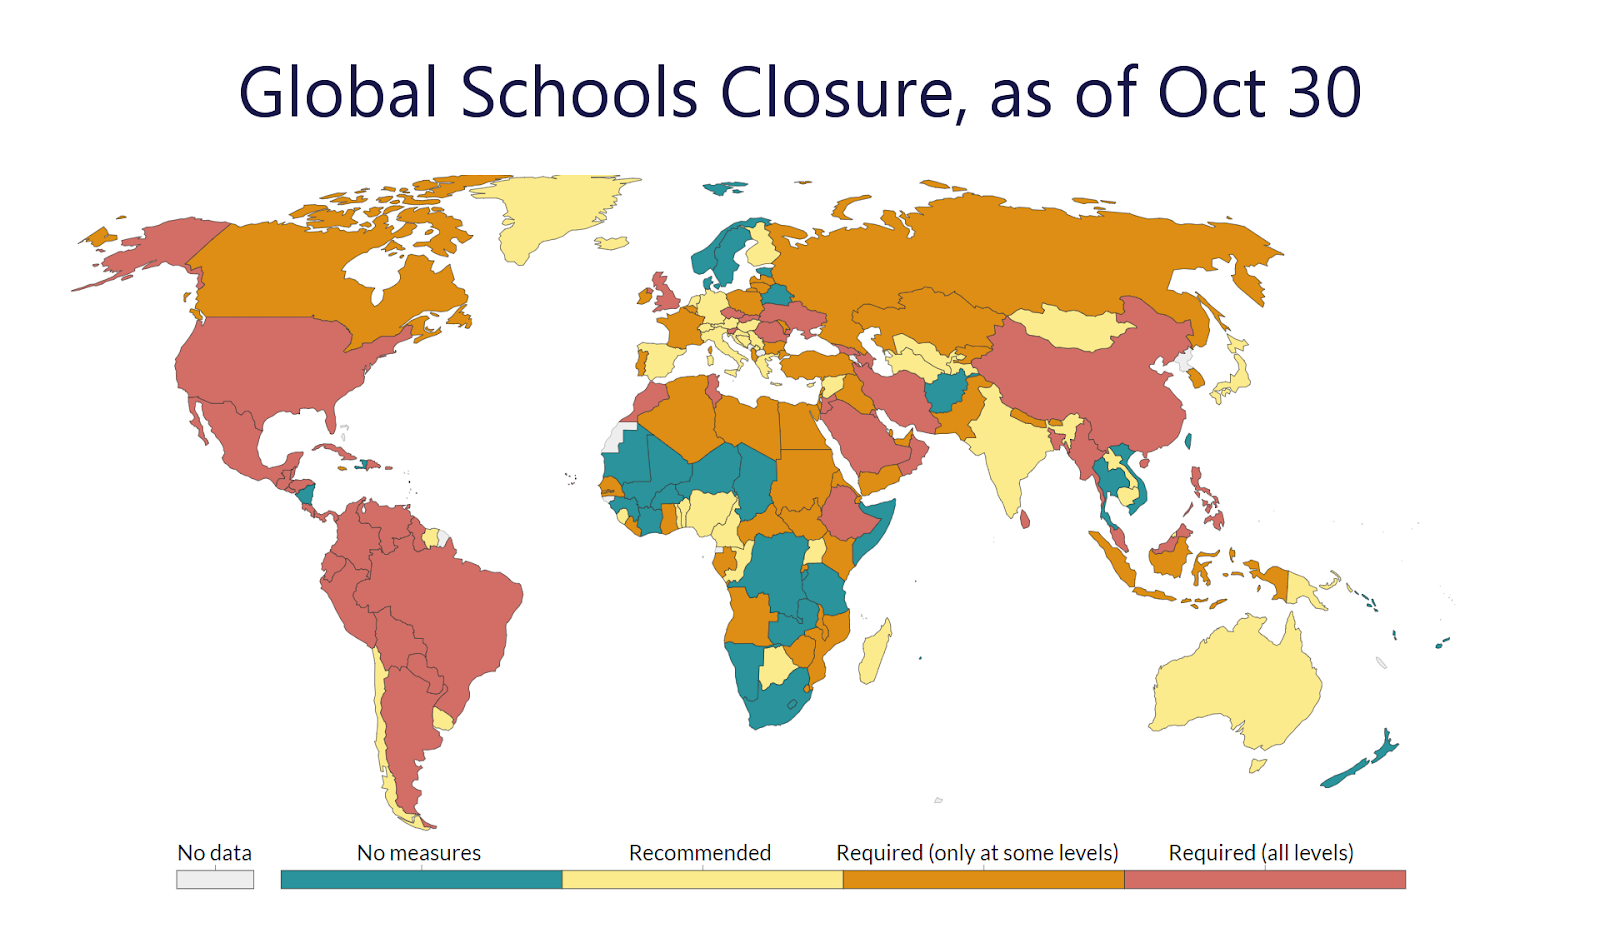 Global Schools Closure Due to COVID as of Oct 2020